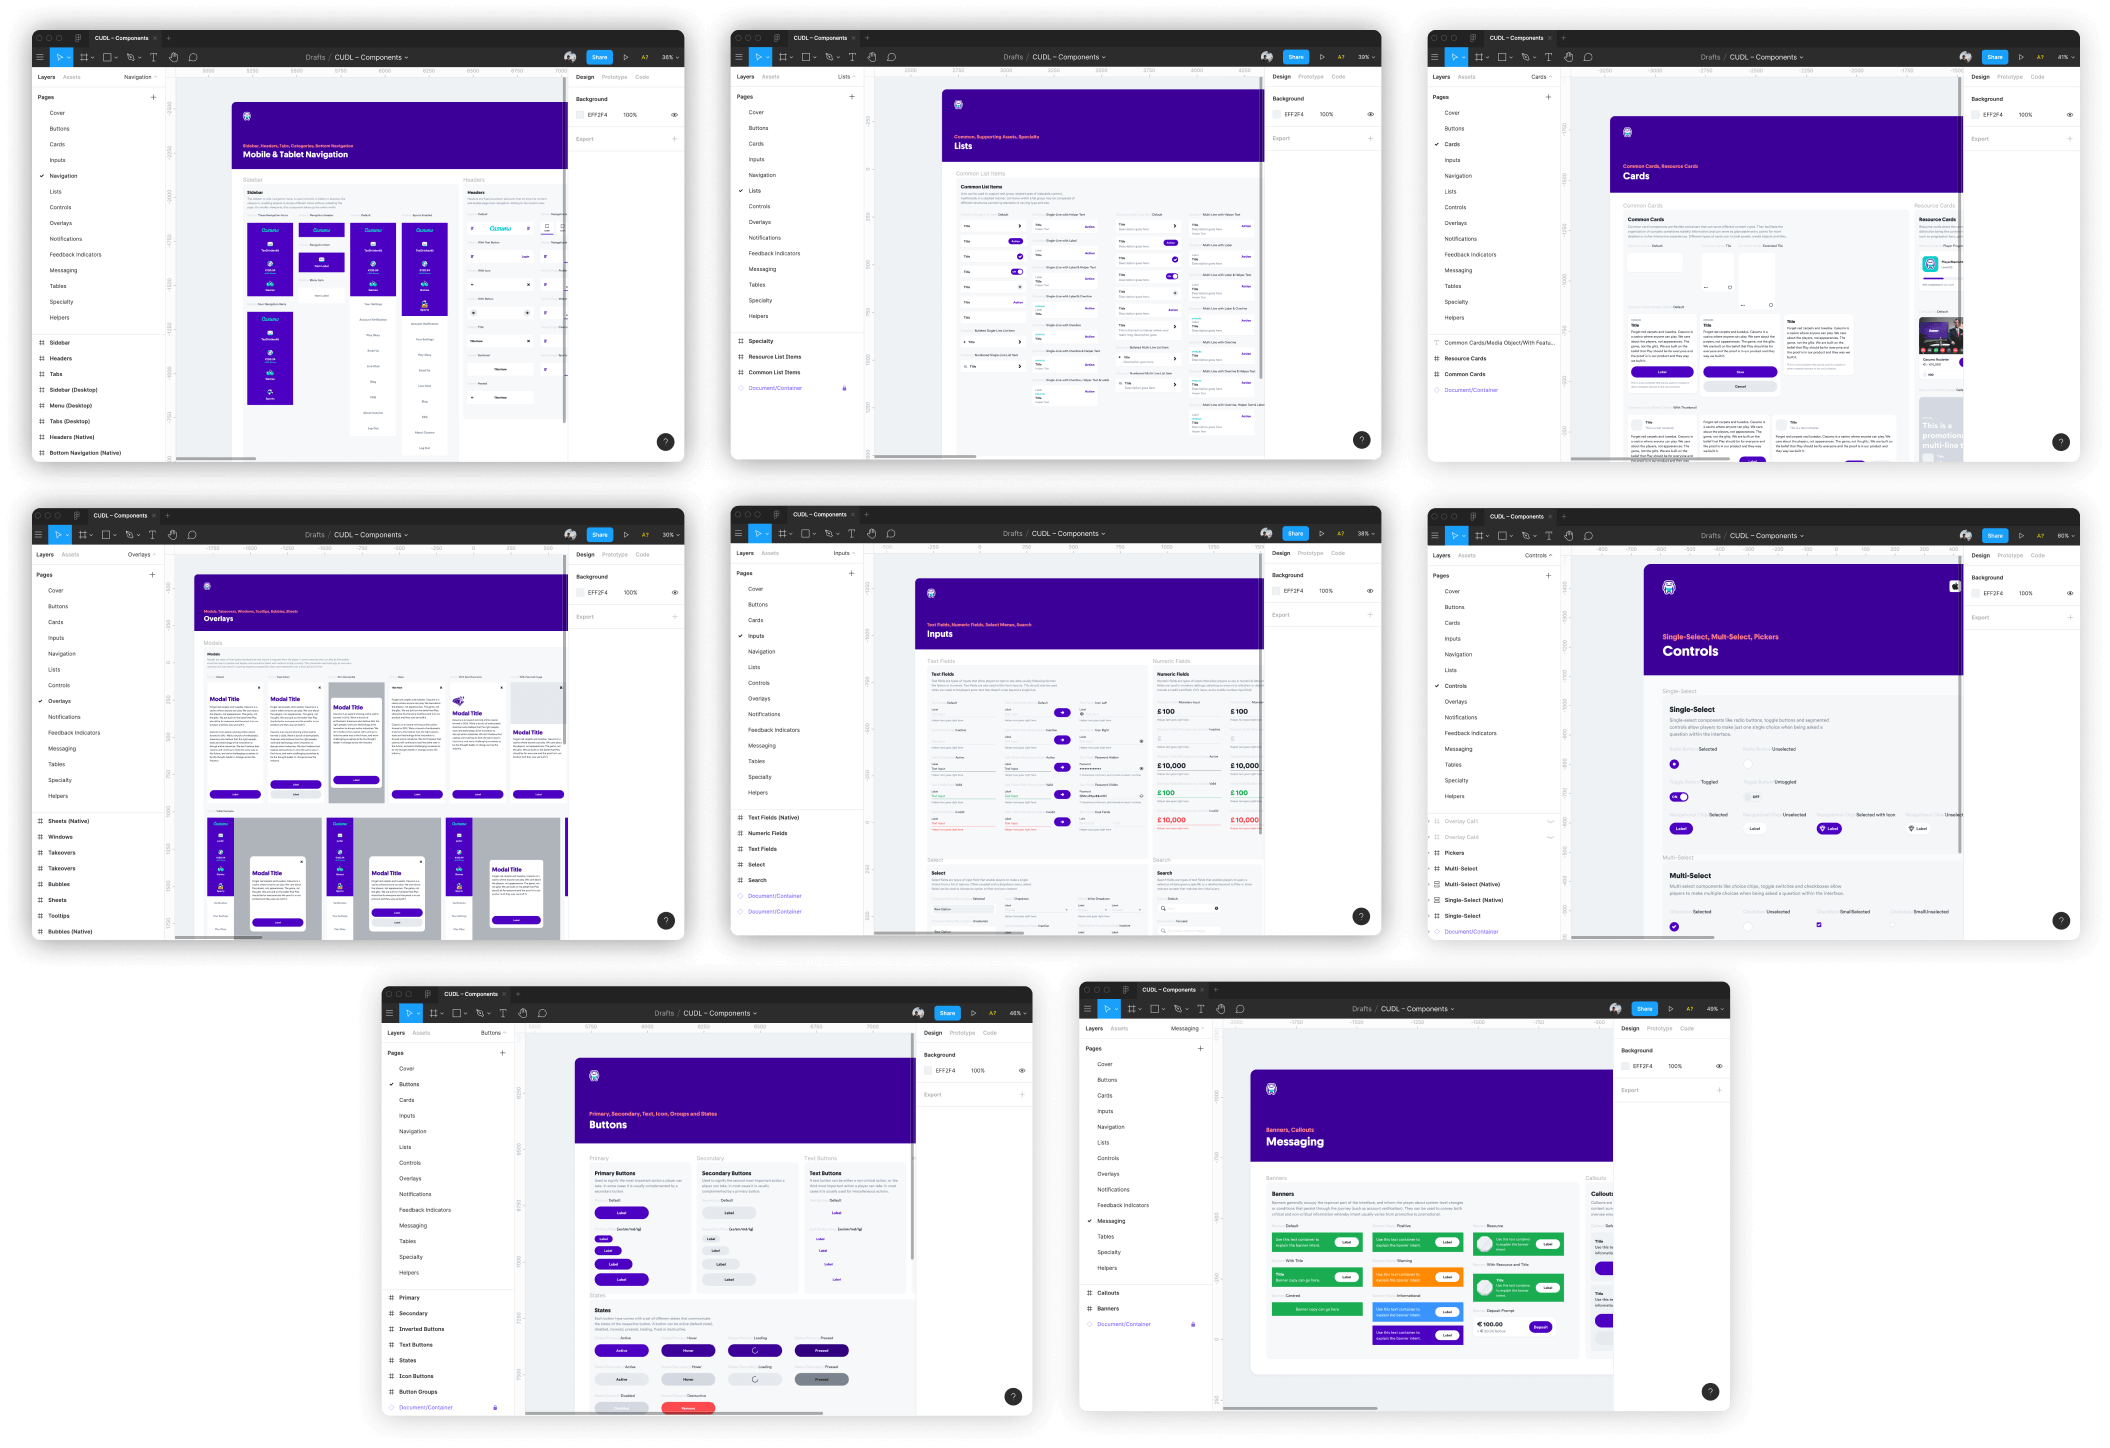 A preview of different component groups. Every component was organized by general categories these being: Buttons, Cards, Inputs, Navigation, Lists, Controls, Overlays, Notifications, Feedback Indicators, Messaging, Tables and Specialty. There was also a Helpers category I added which included frequently used containers such as mobile browsers, third party views, utilities and platform-specific items.